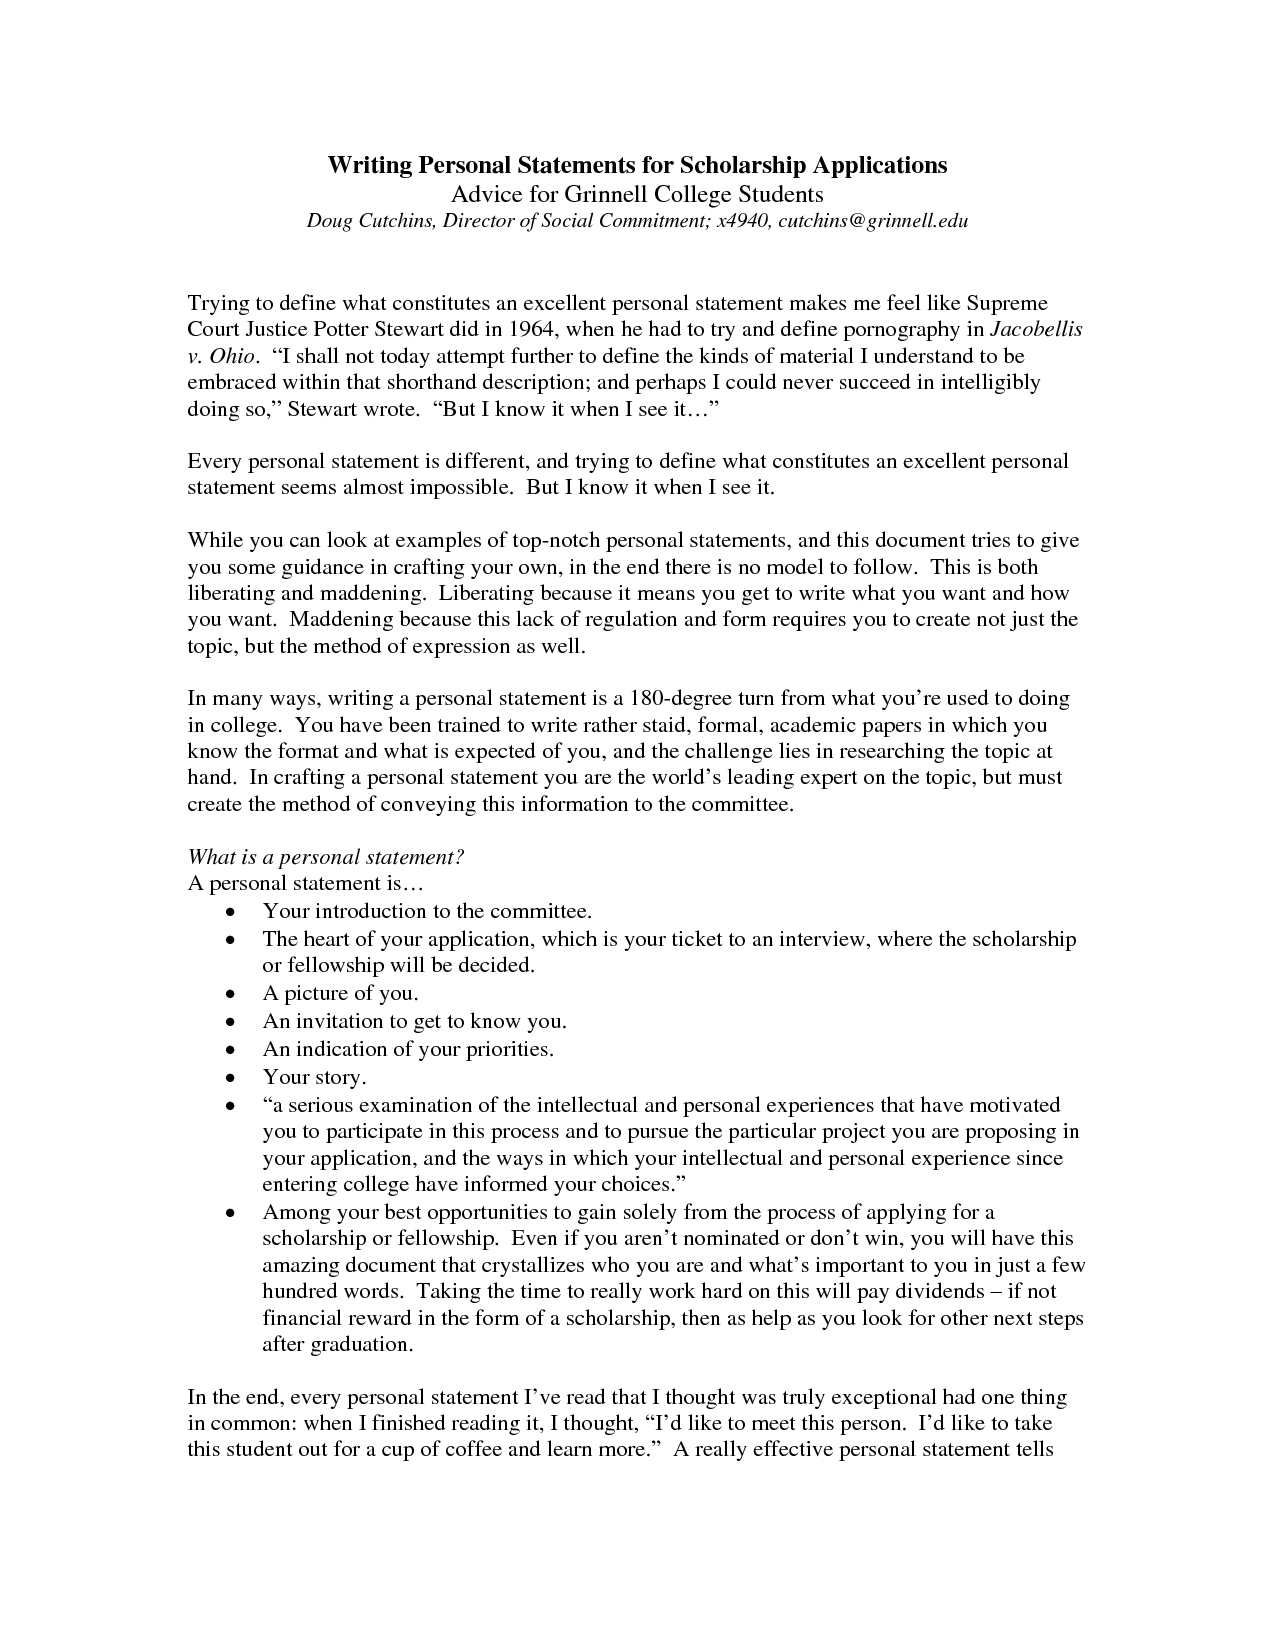 how to write a personal statements | Cover Latter Sample | Pinterest